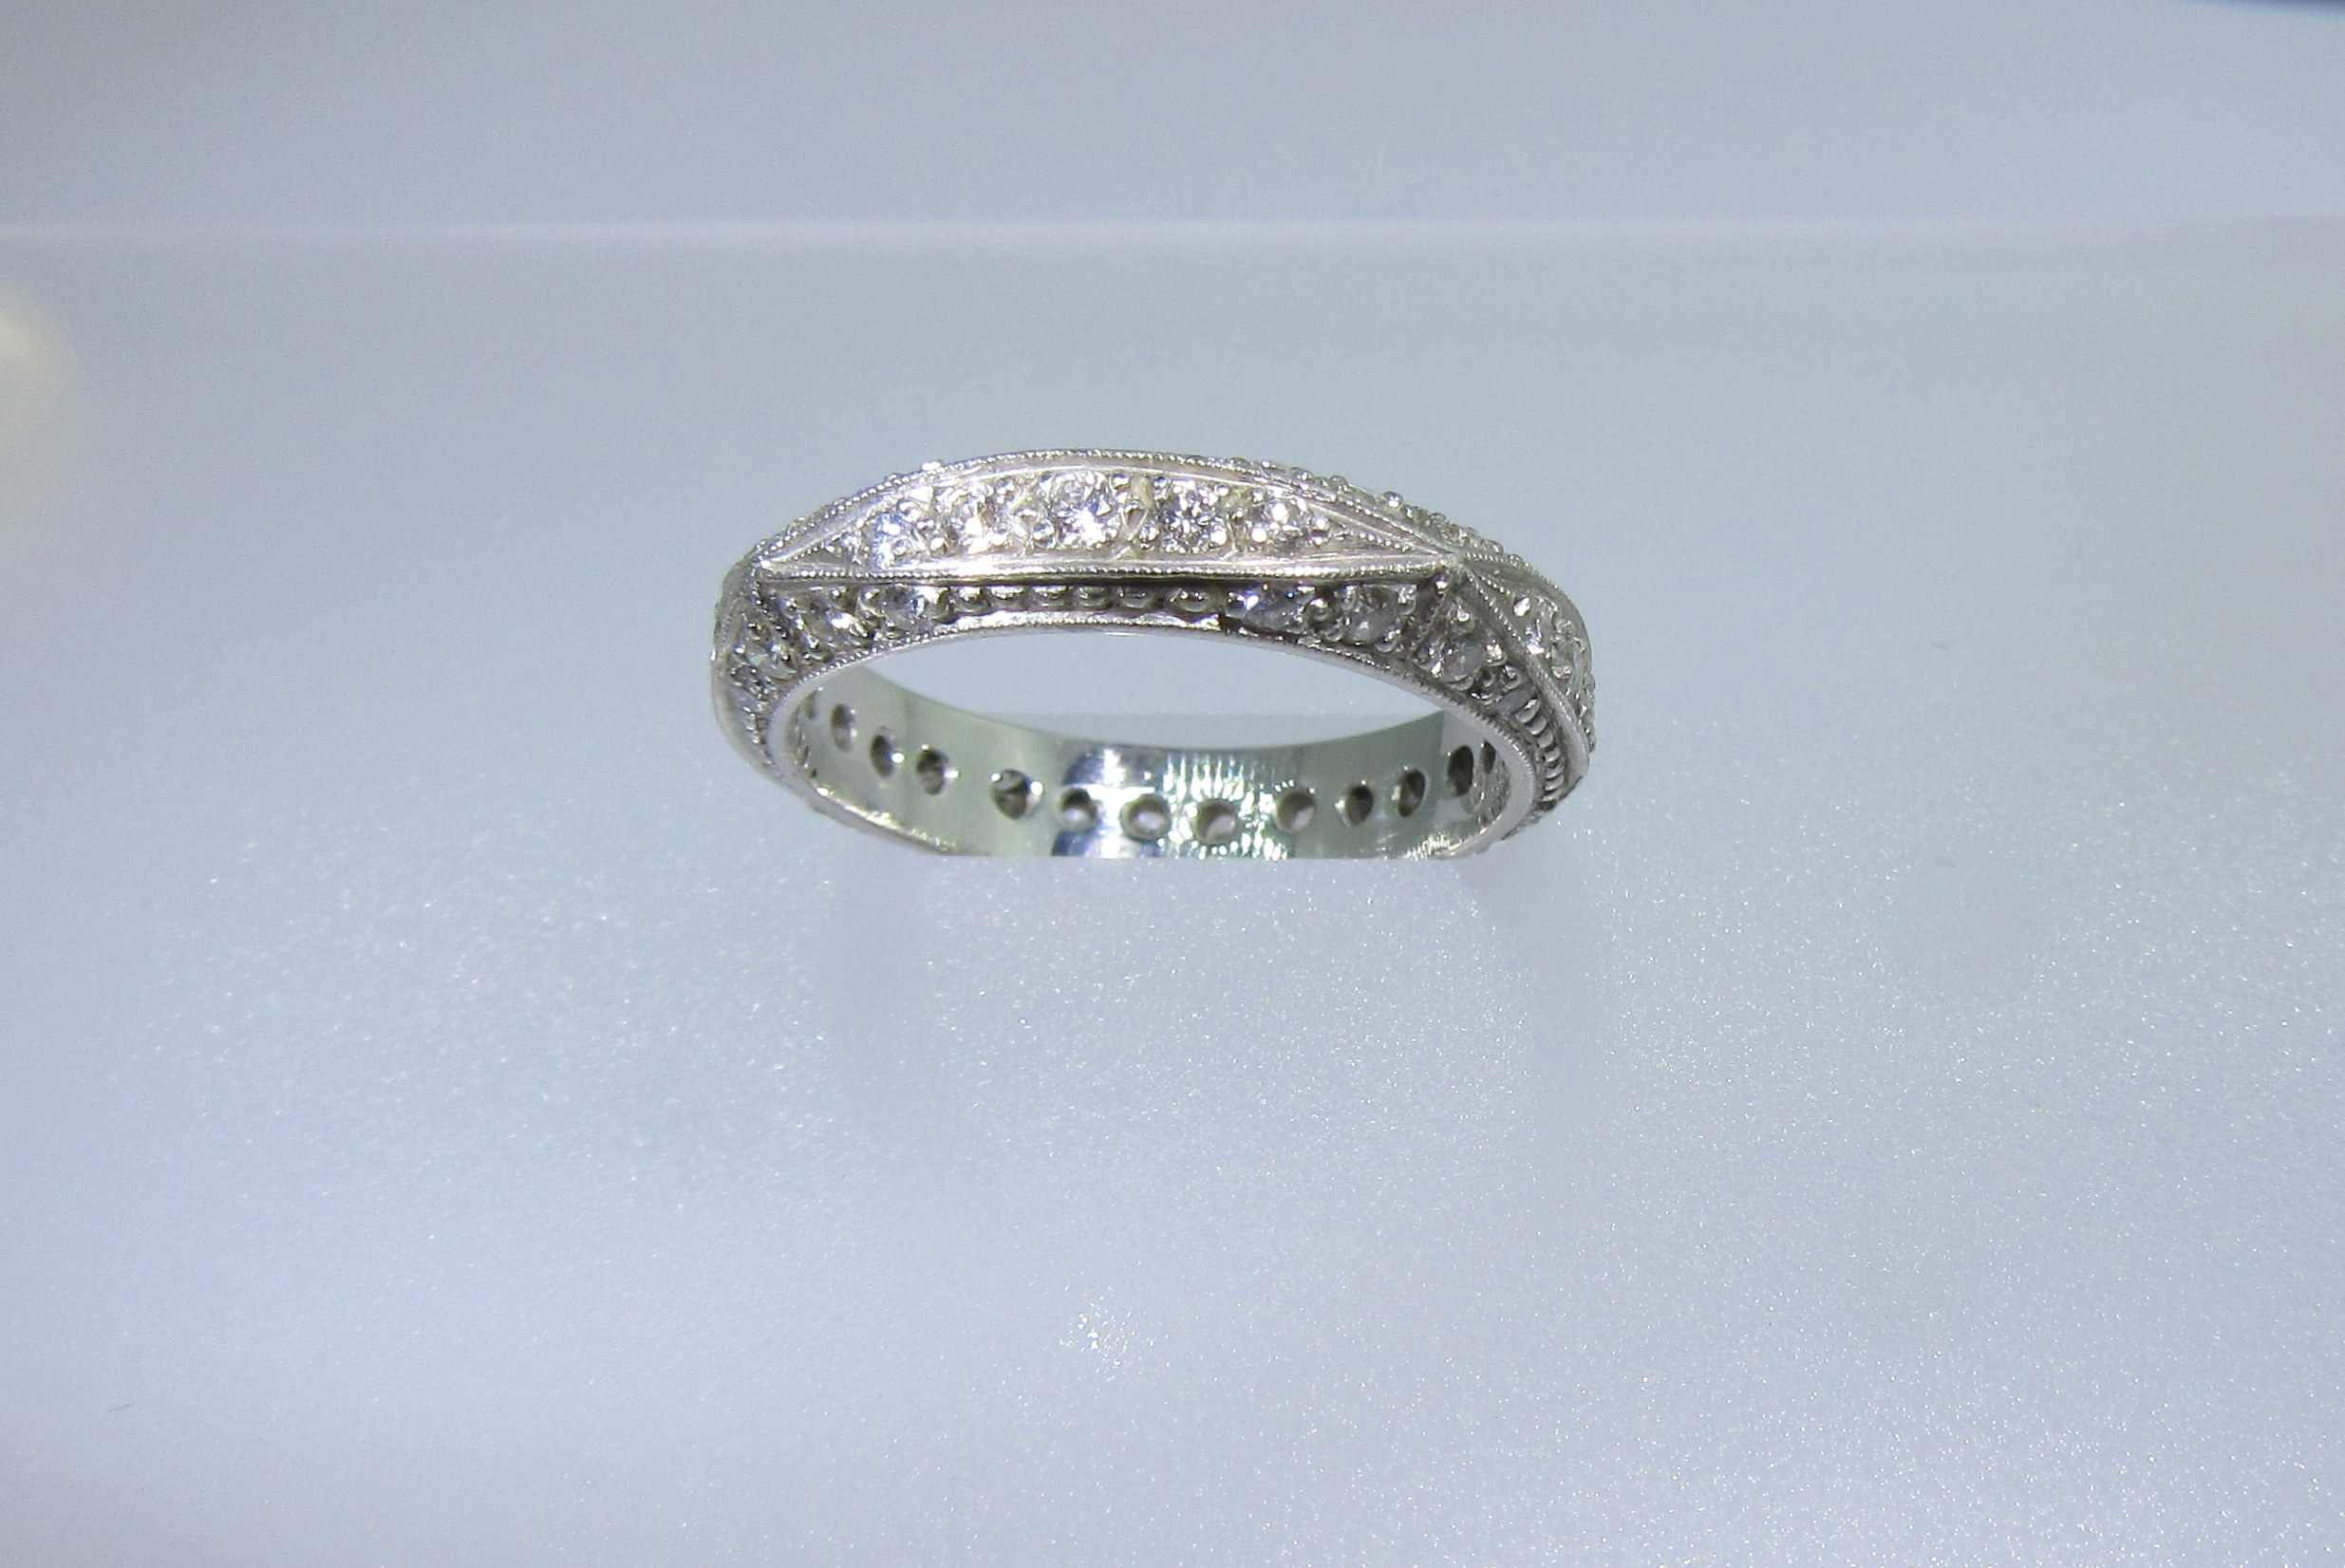 Antique Pave & Milgrain Band